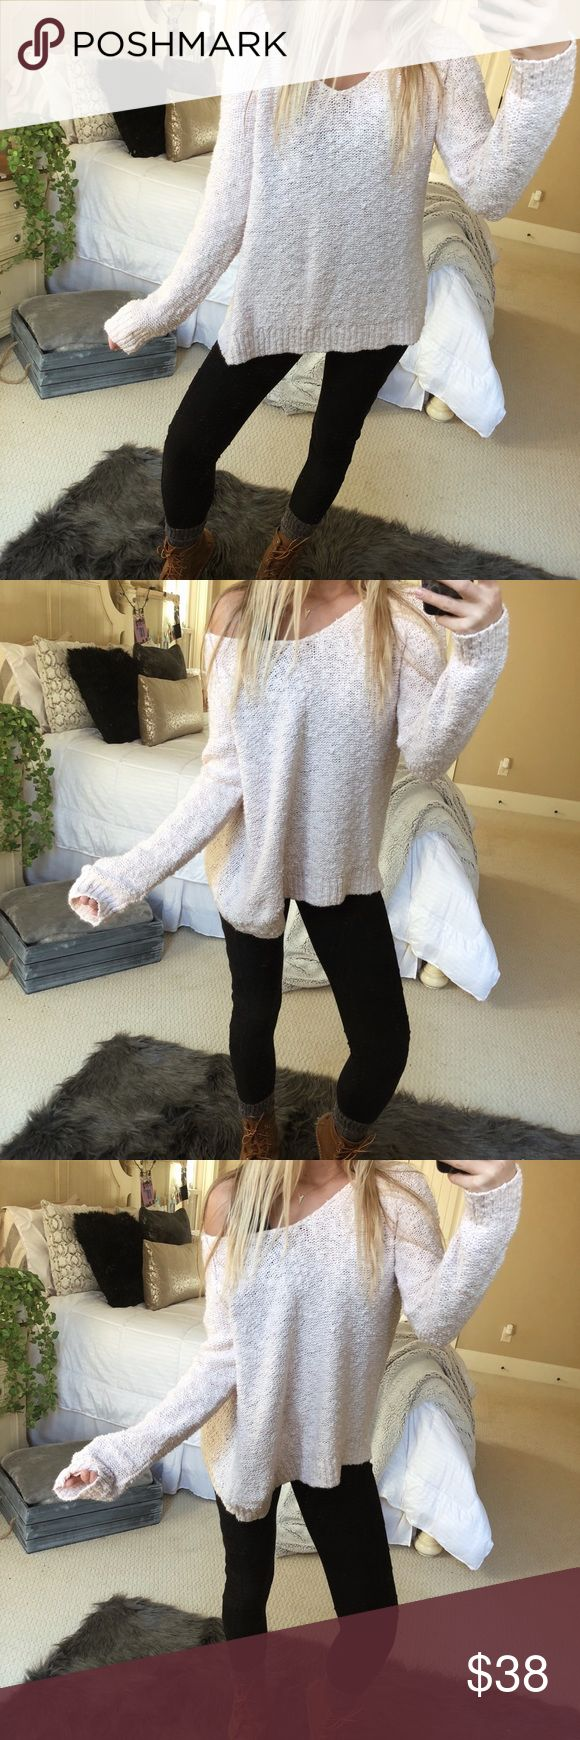 pale blush cozy knit beautiful pale blush chunky, slouchy knit sweater. super cozy and cute! fits a size medium or large 💐🍃🌻 — * all offers 100% welcomed + encouraged * bundle for a private discount of at least 20% off  * orders guaranteed to ship within 1-2 days unless stated otherwise * ask me any questions if you ever have any! xo Sweaters